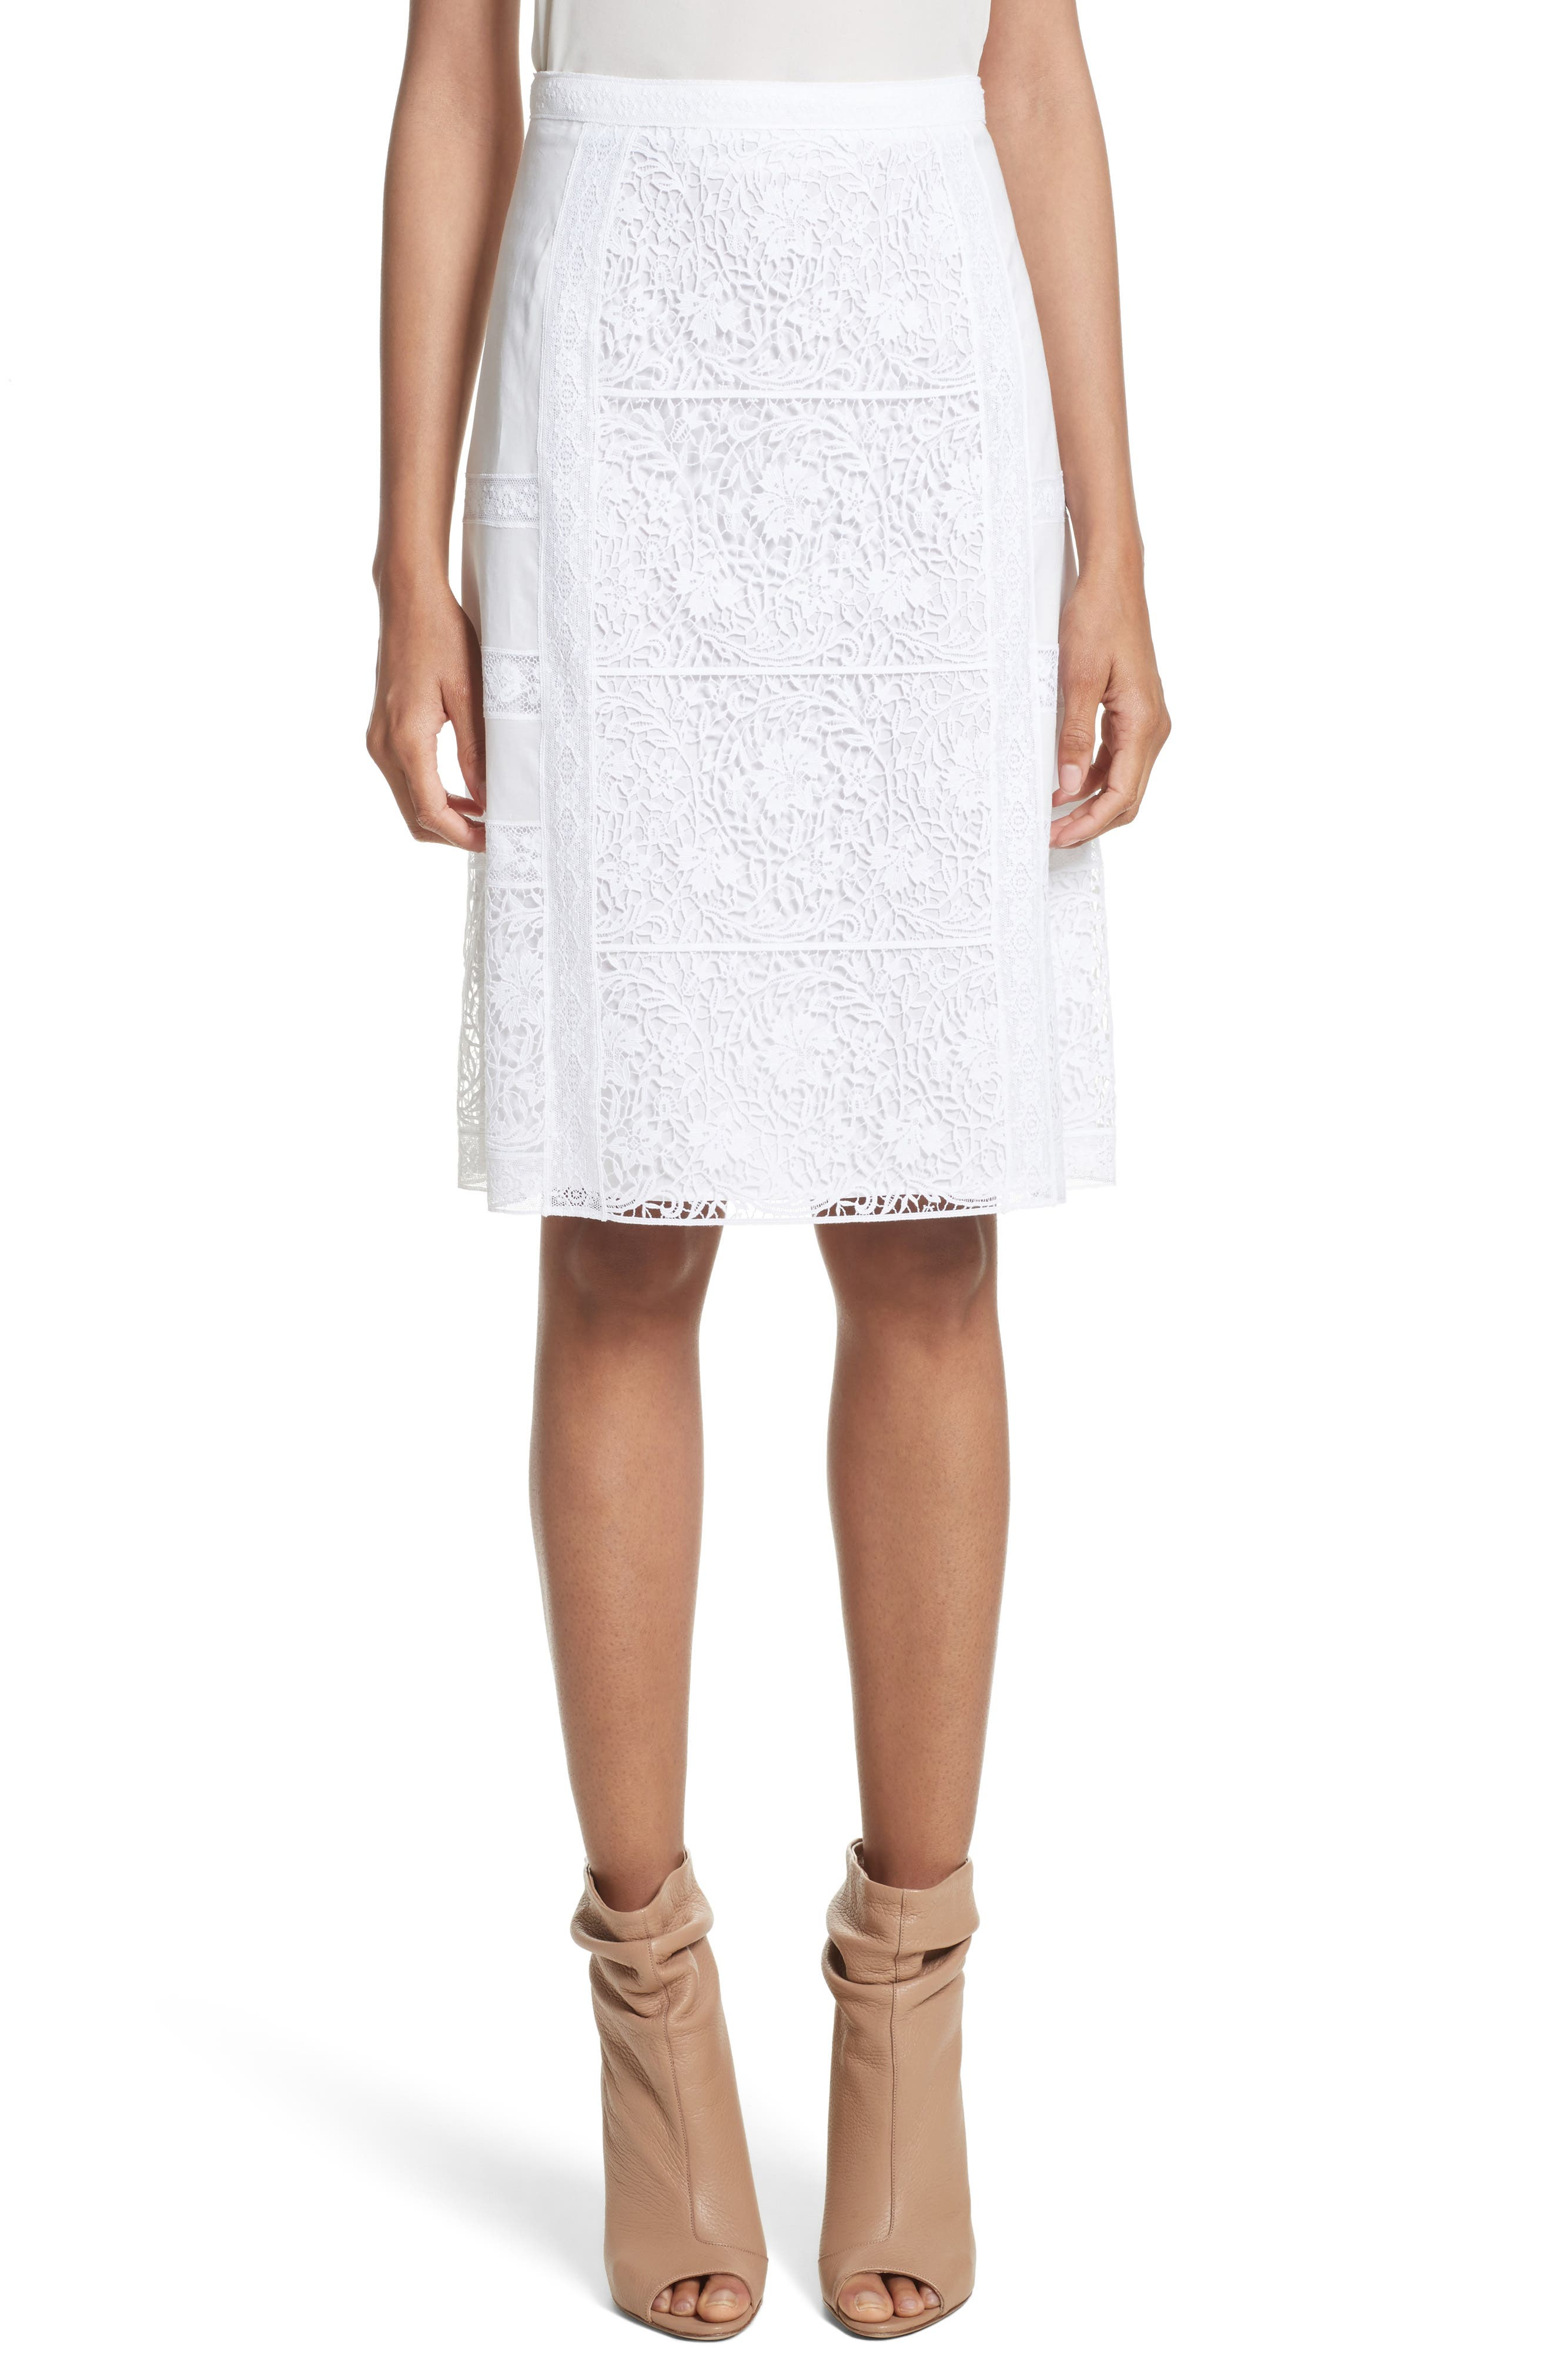 Burberry Drin Lace A-Line Skirt